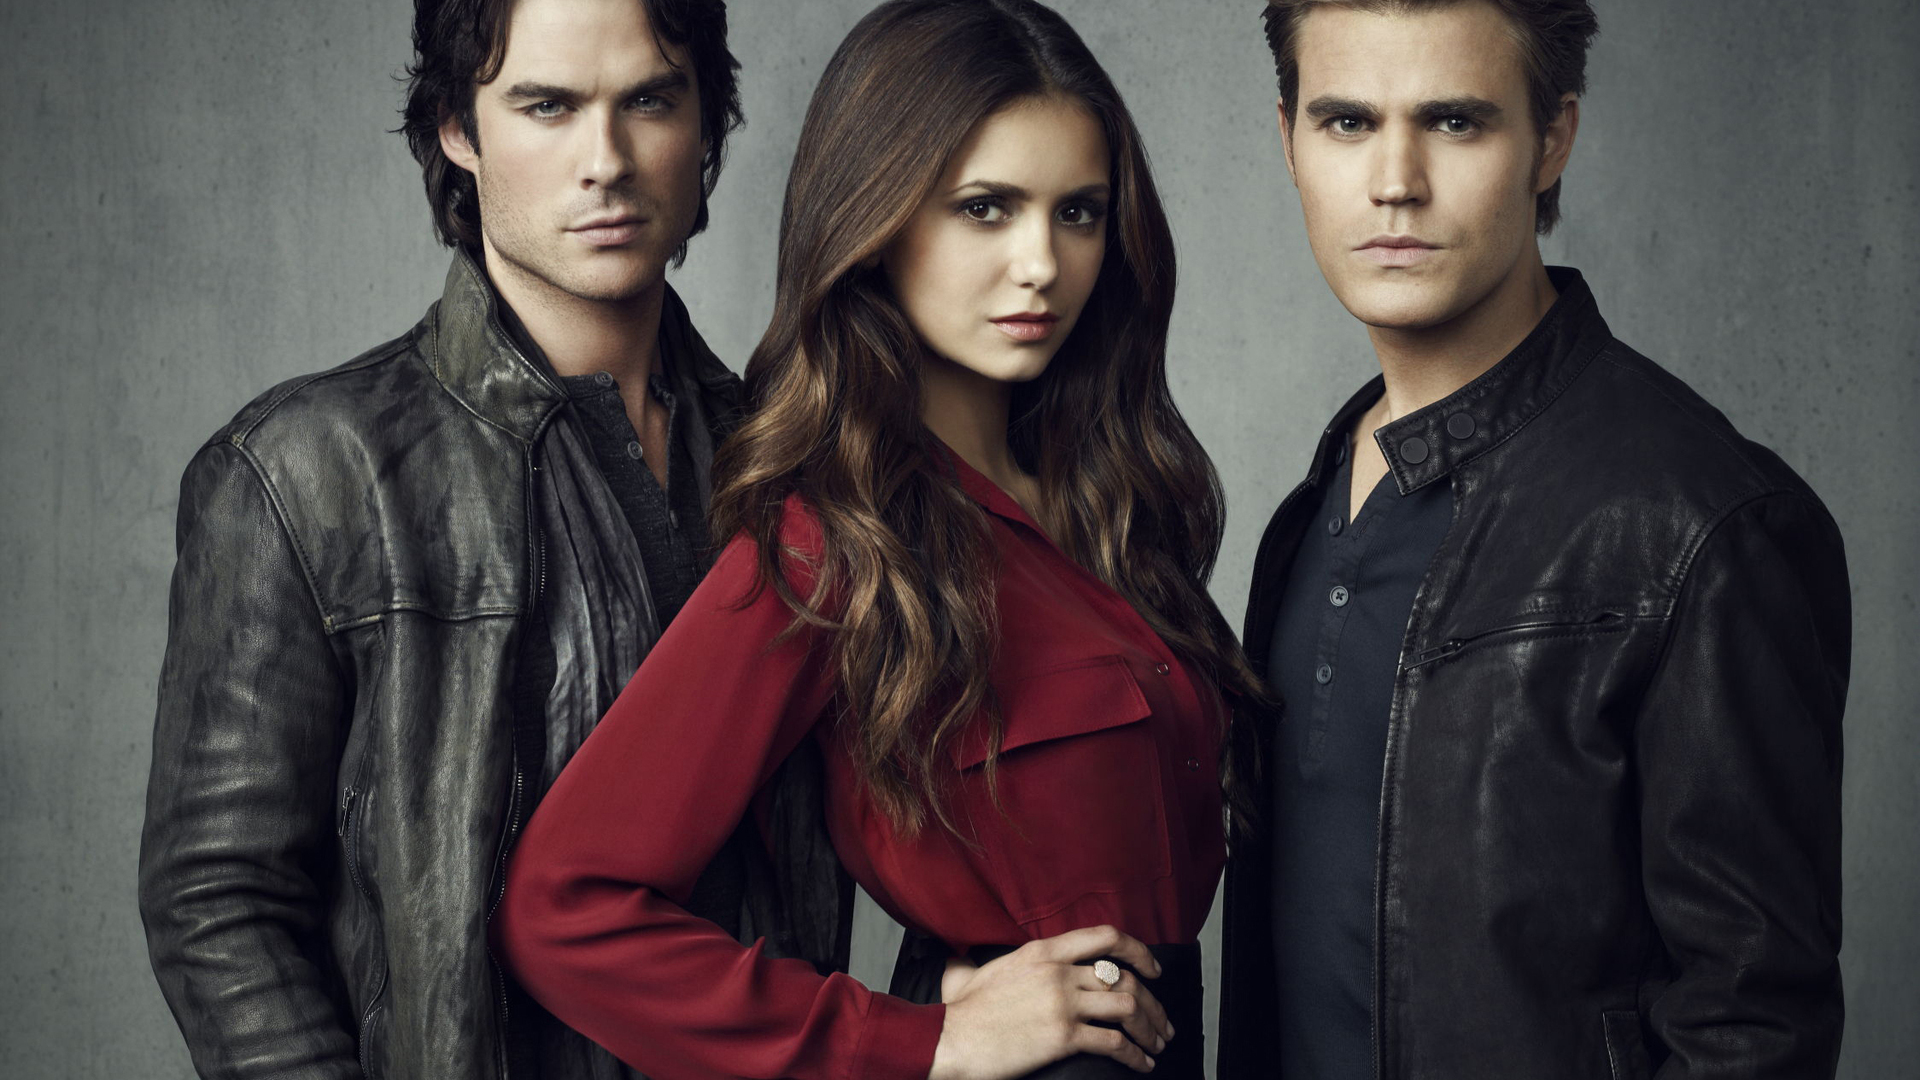 The Vampire Diaries Pictures - Tvd The Vampire Diaries , HD Wallpaper & Backgrounds